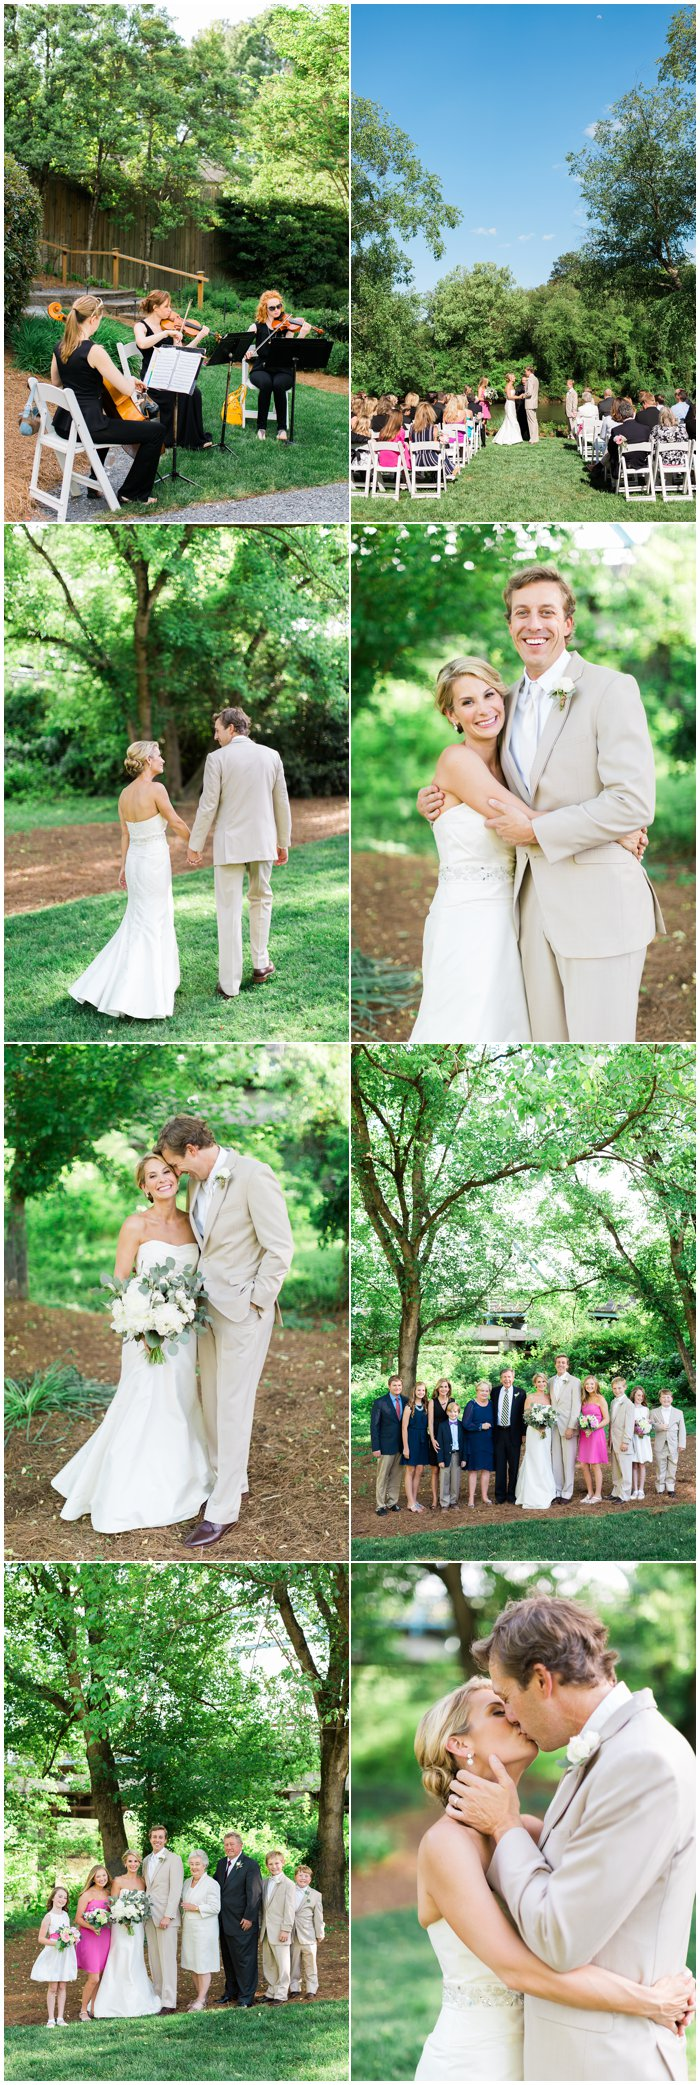 Lee Anne & Chuck Wedding_Rustic White002.jpg